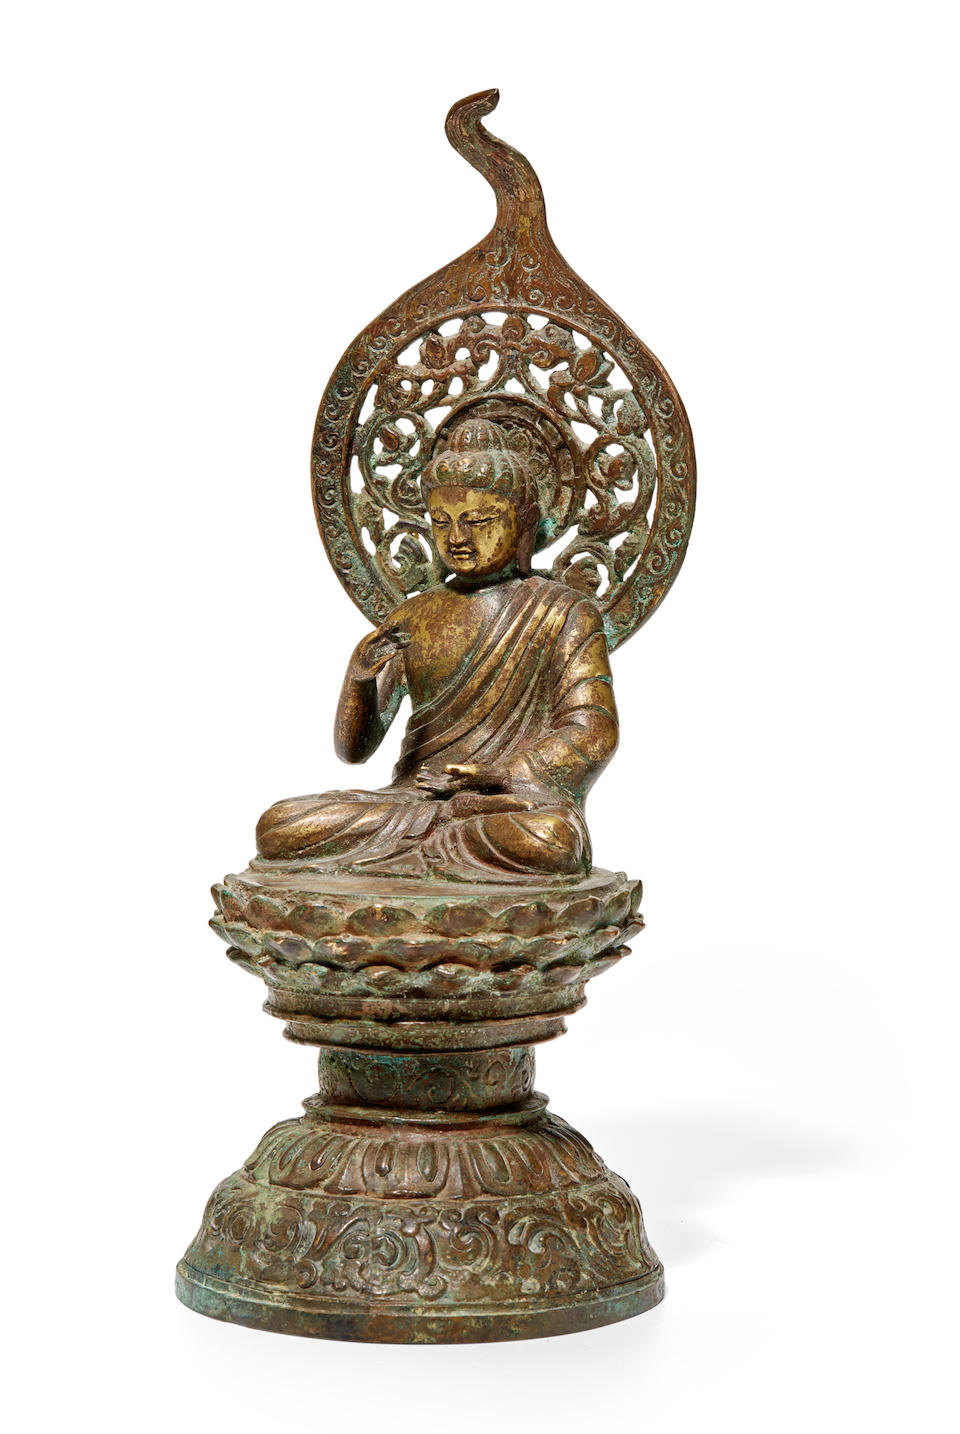 A gilt metal alloy figure of the seated Buddha